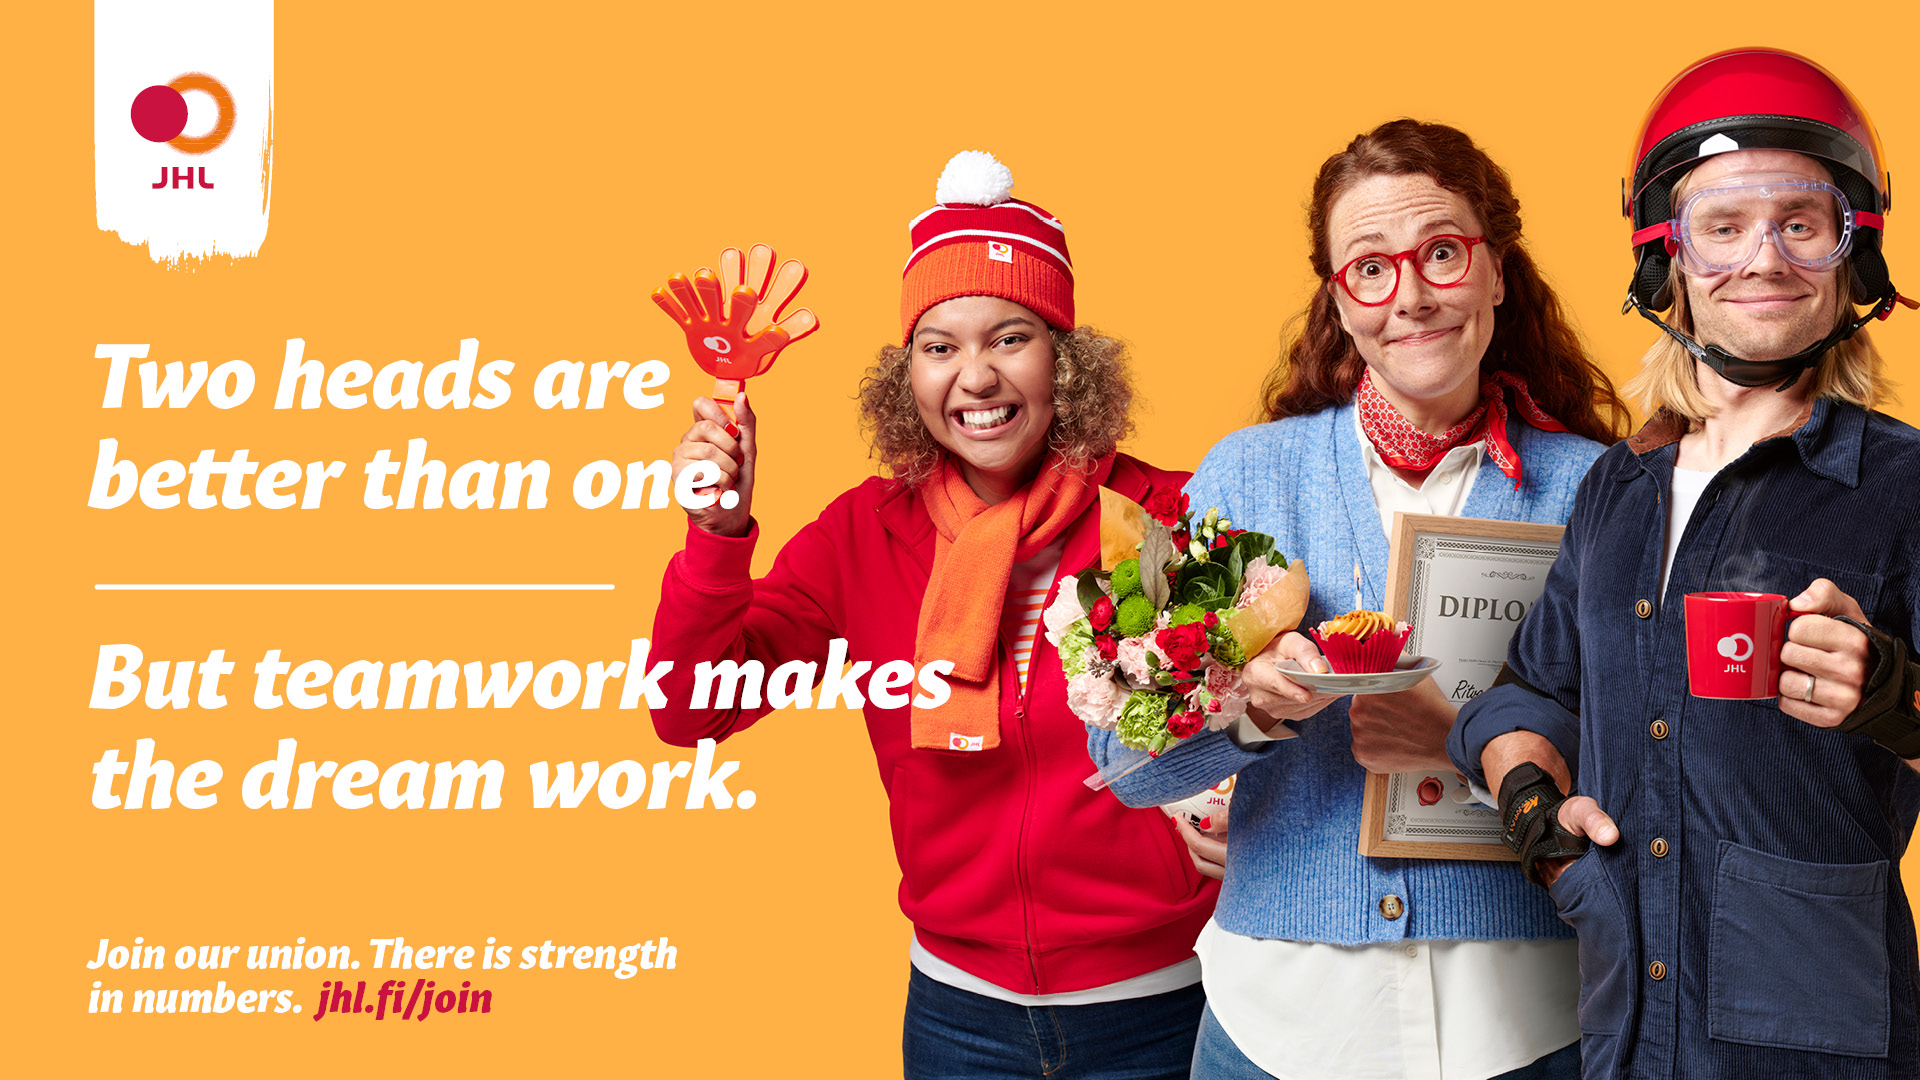 Three people says: Join our union. There is strength in numbers. jhl.fi/join.